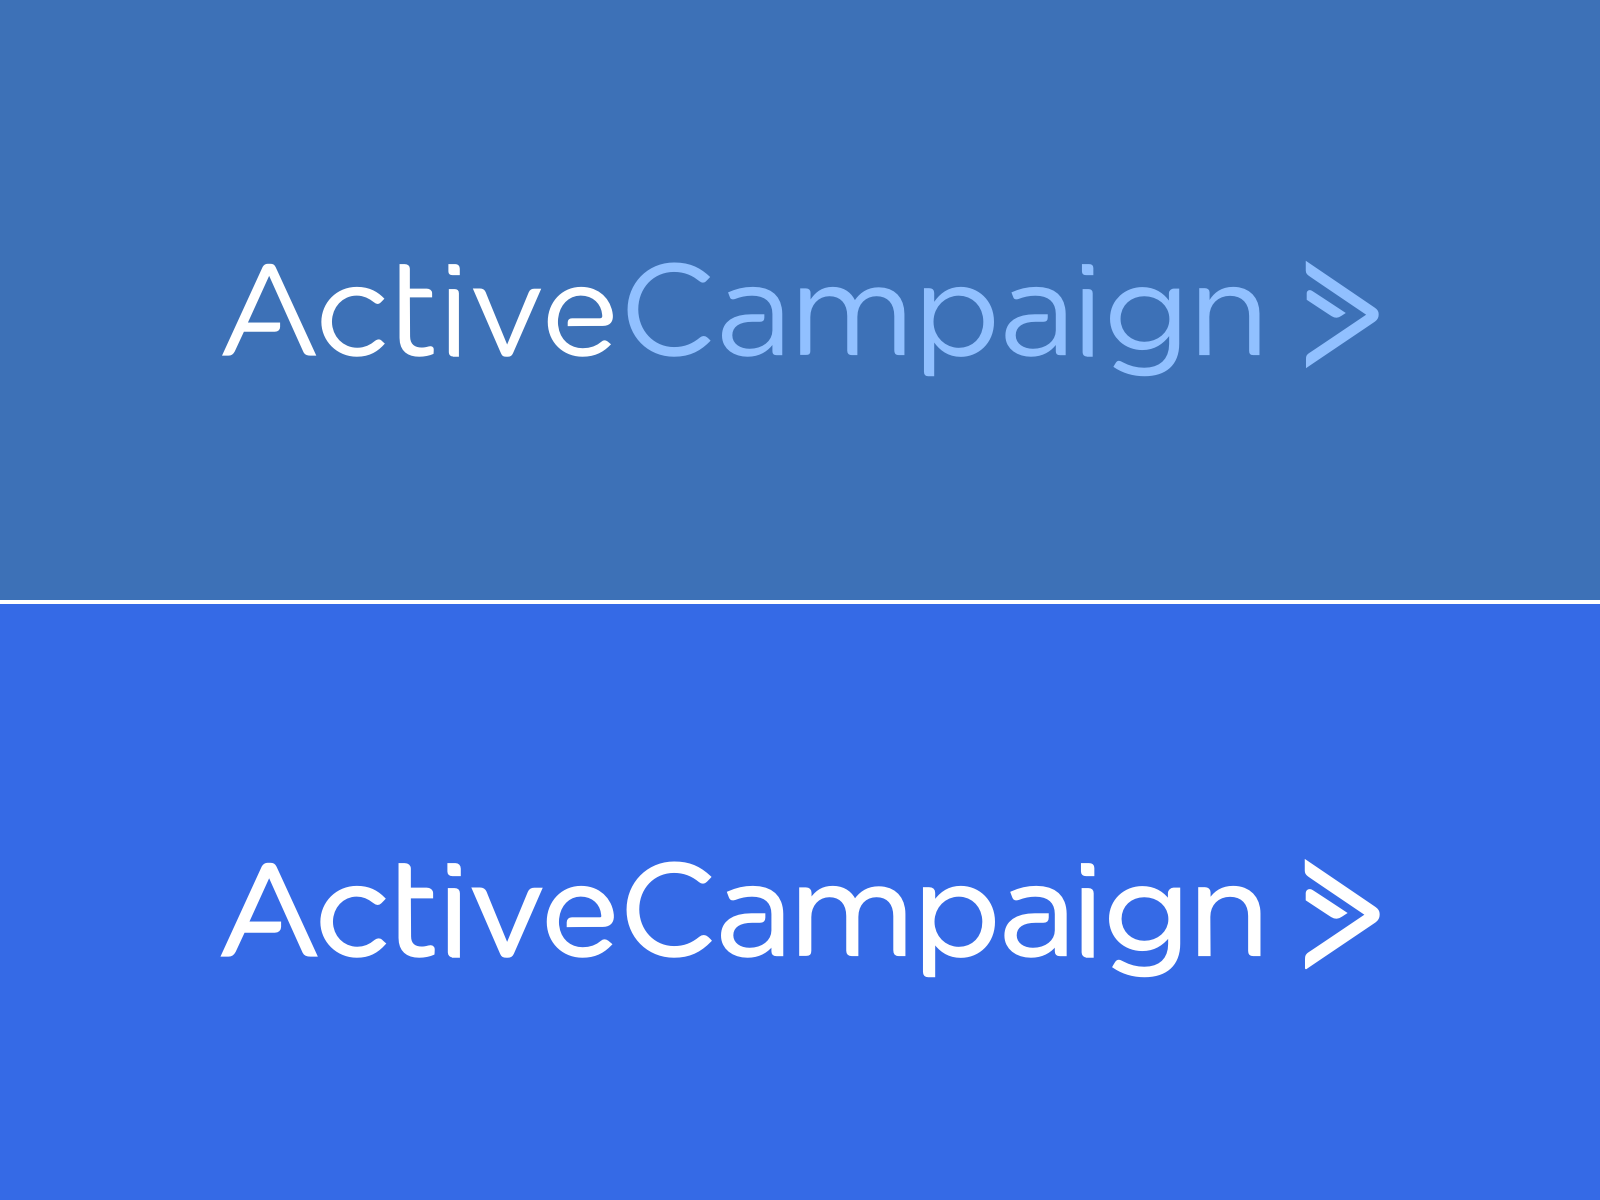 ActiveCampaign's old brand identity up top, new identity below